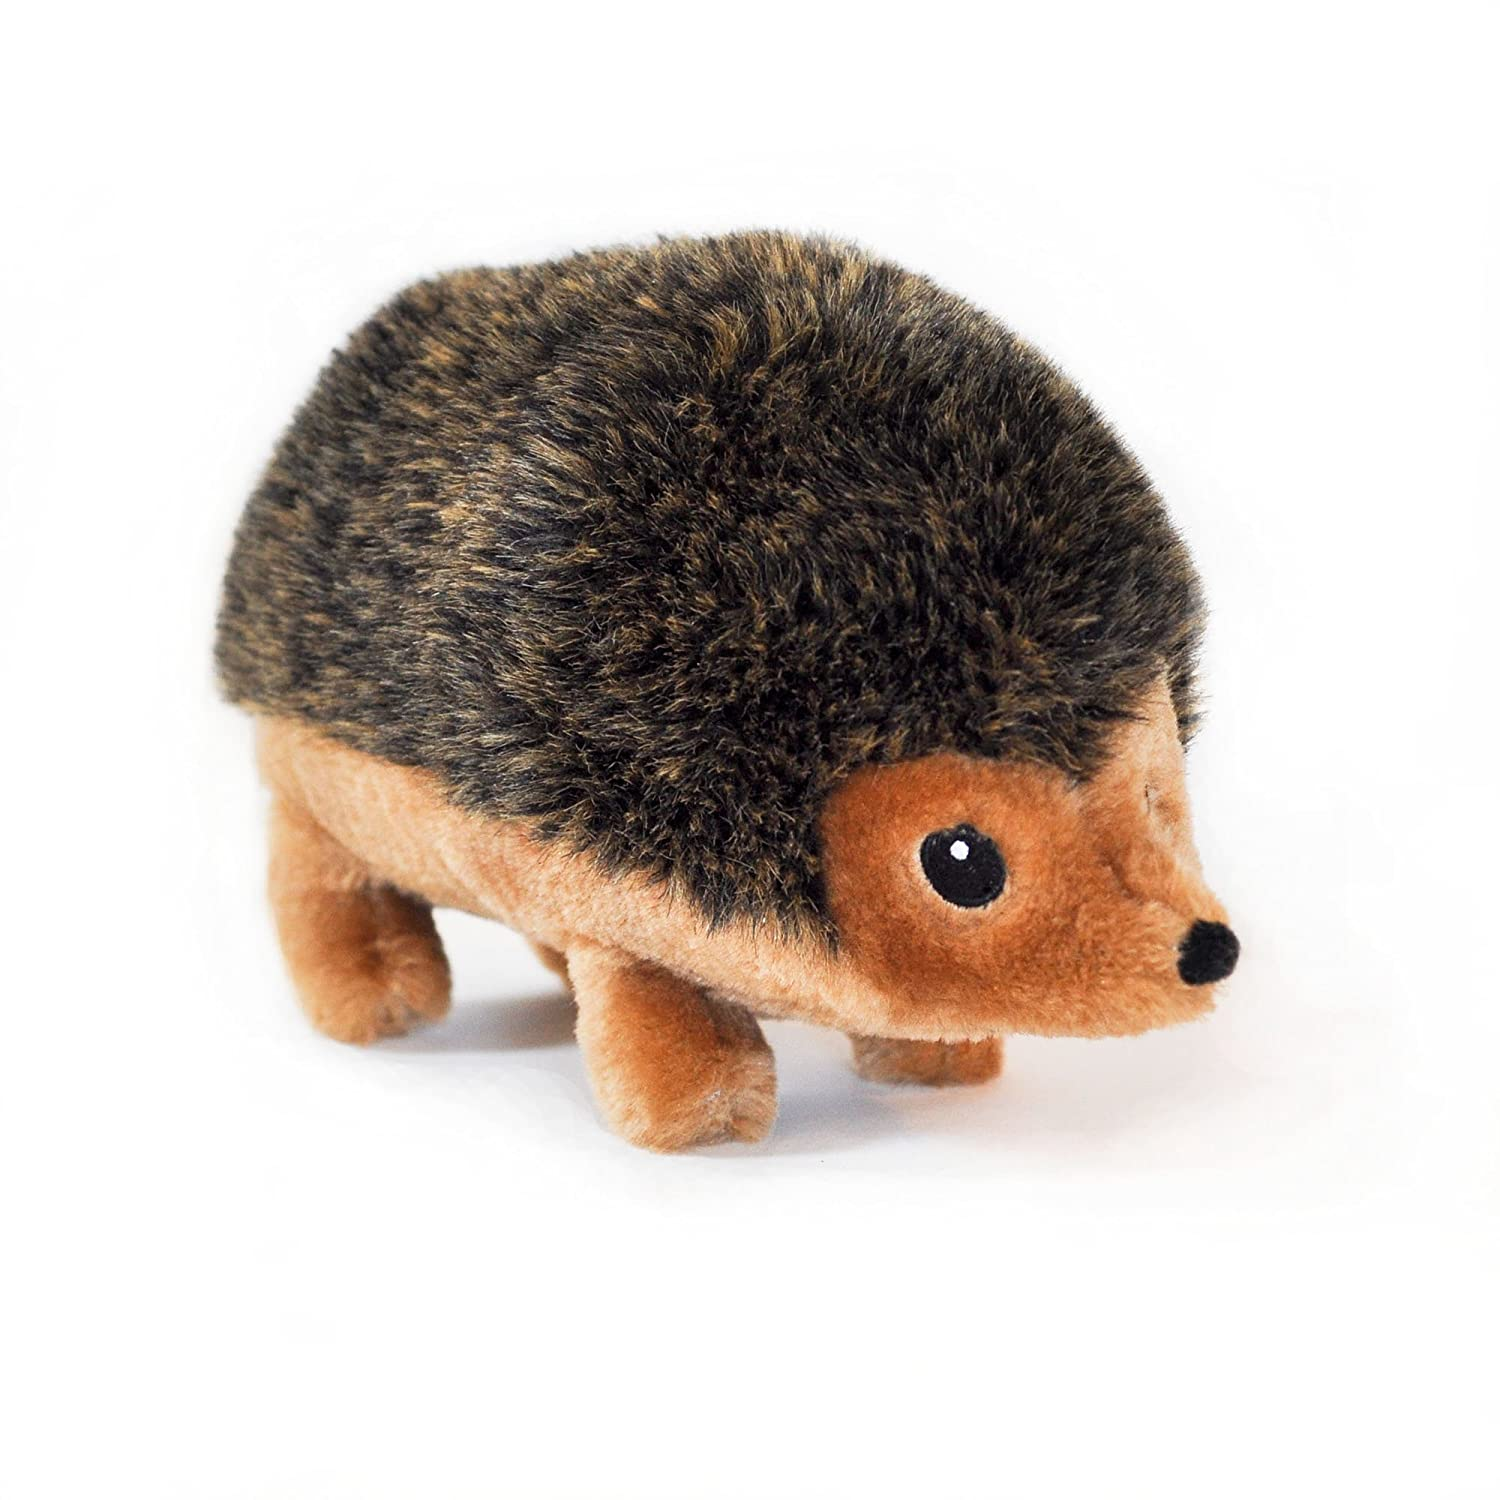 Pet Supplies Pet Squeak Toys ZippyPaws 9 Inch Hedgehog Squeaky